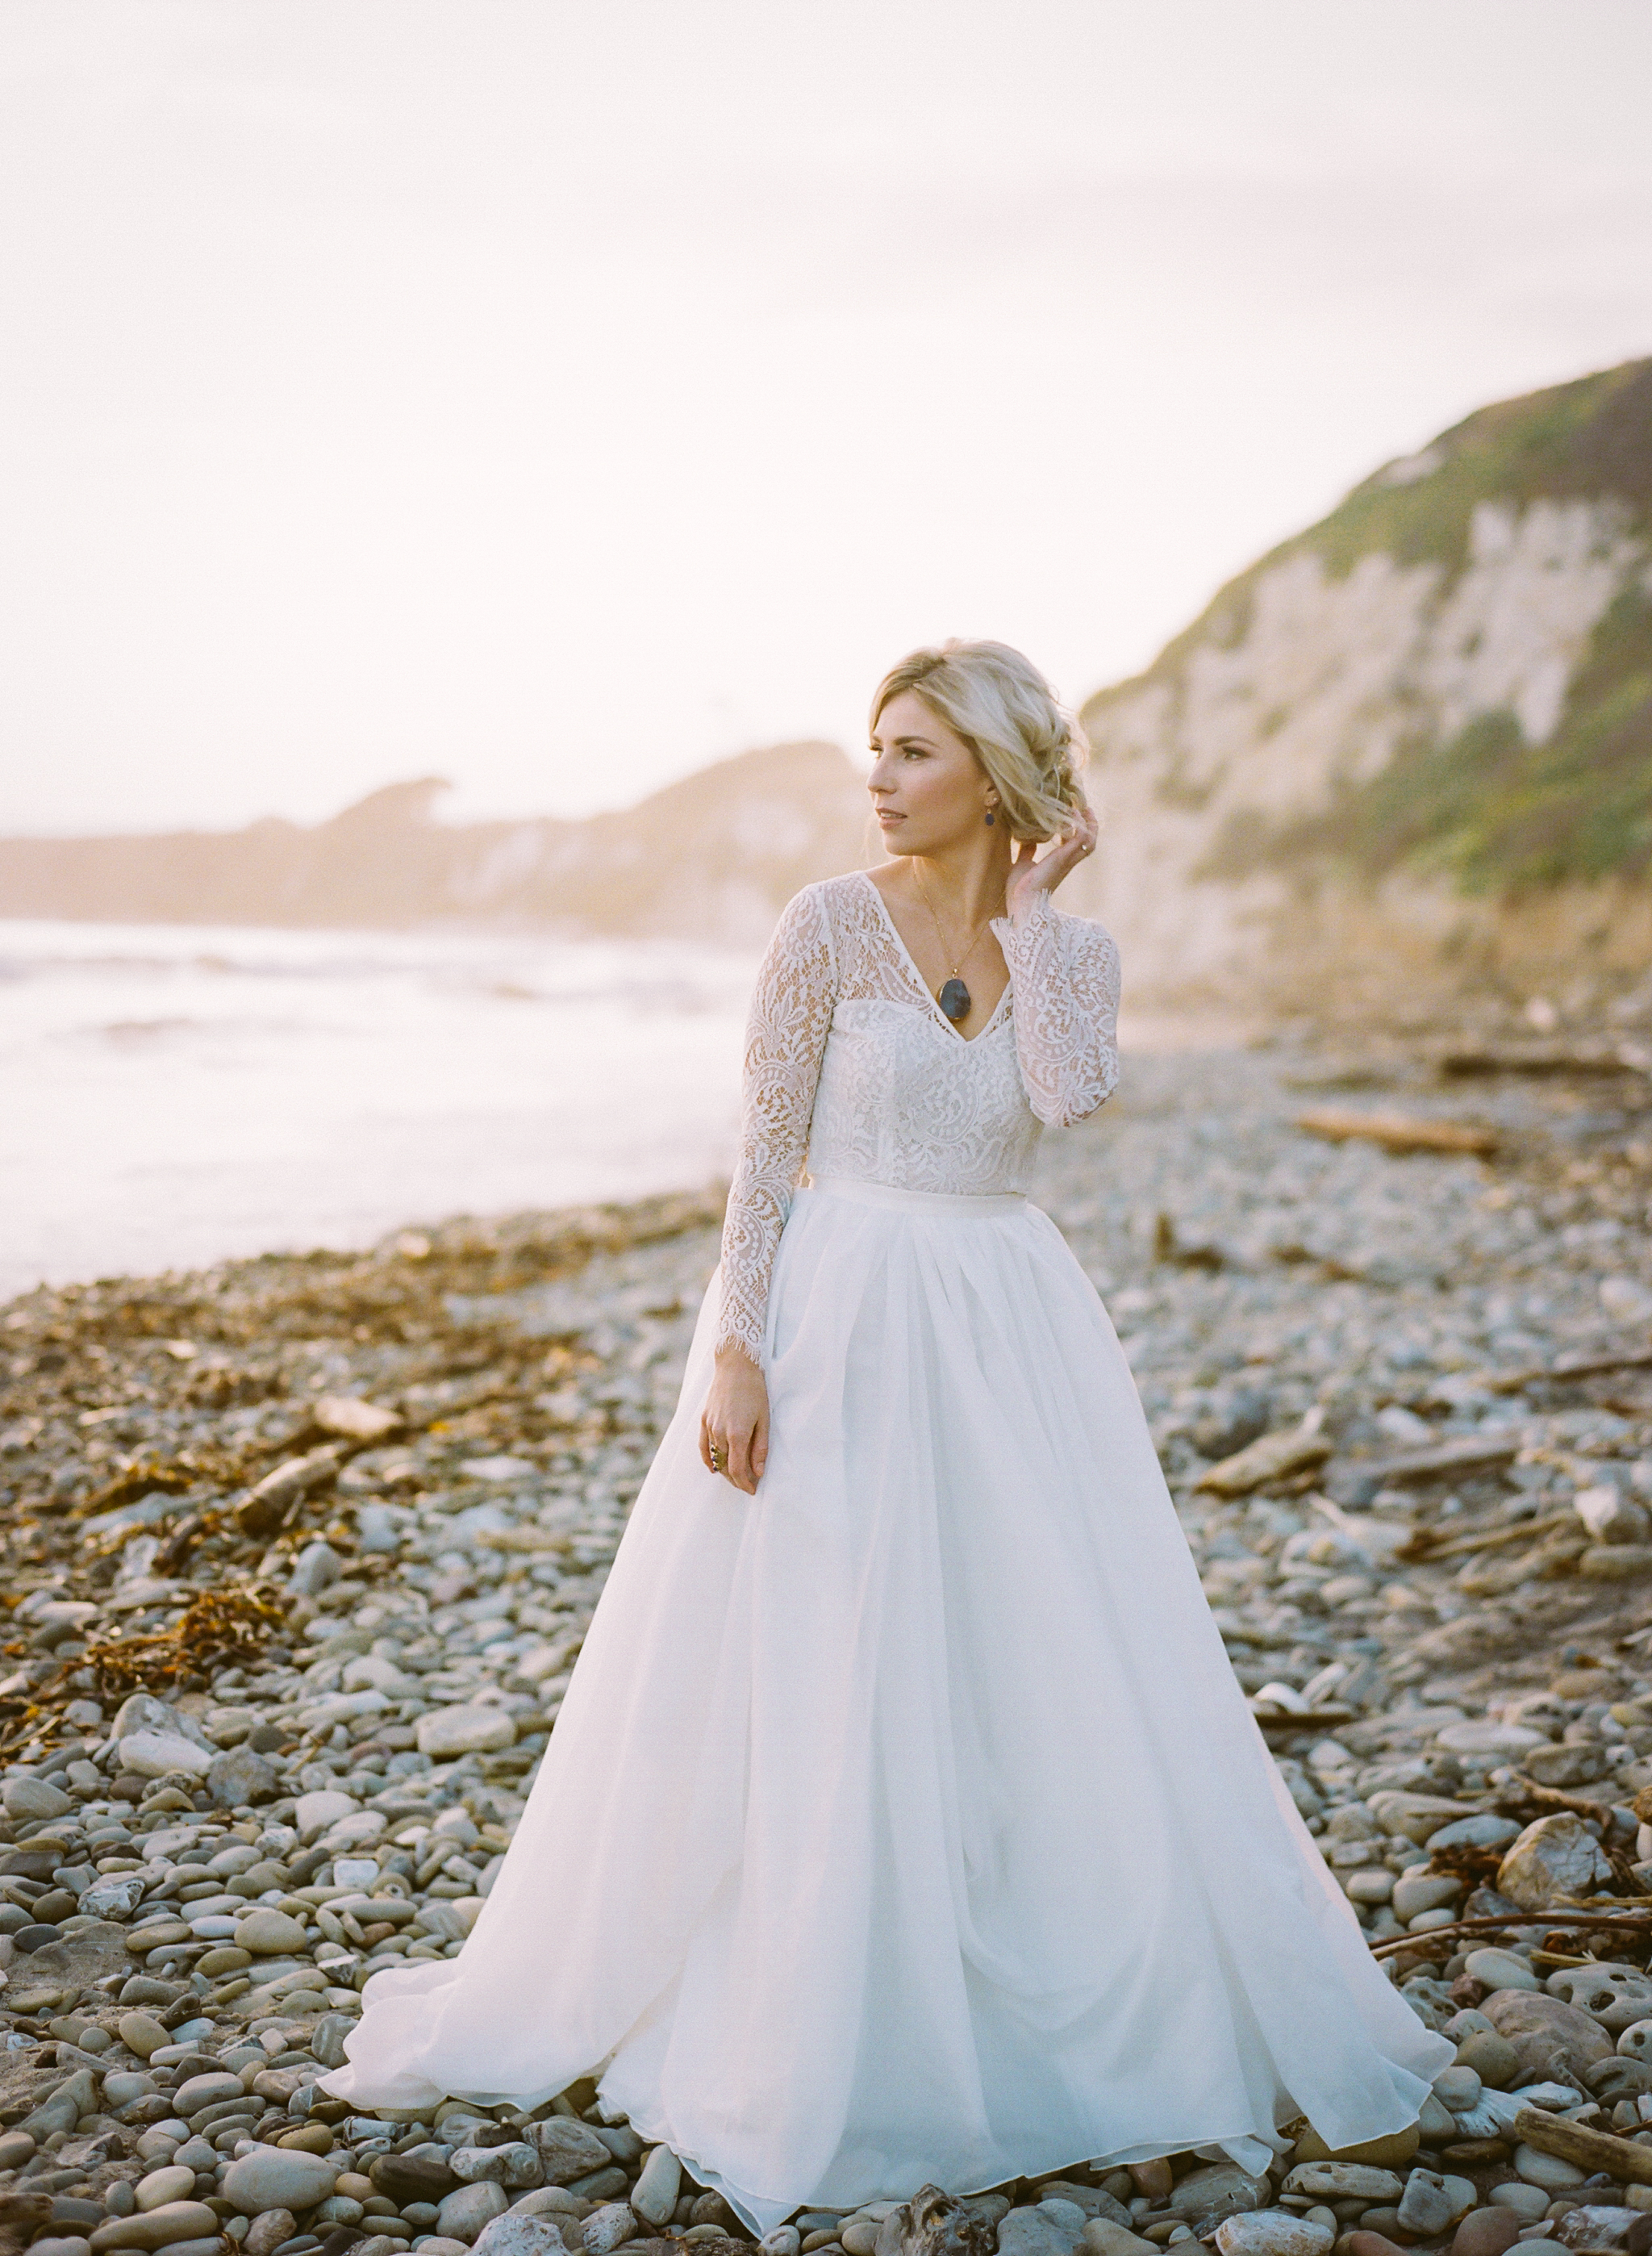 Ellwood Bluffs Bridal Session | California Photographer | Wedding Inspiration | Taken by Sarah | Burgundy Bridal Bouquet | Ethereal Bride | Joy Wed | Fine Art Wedding Blog